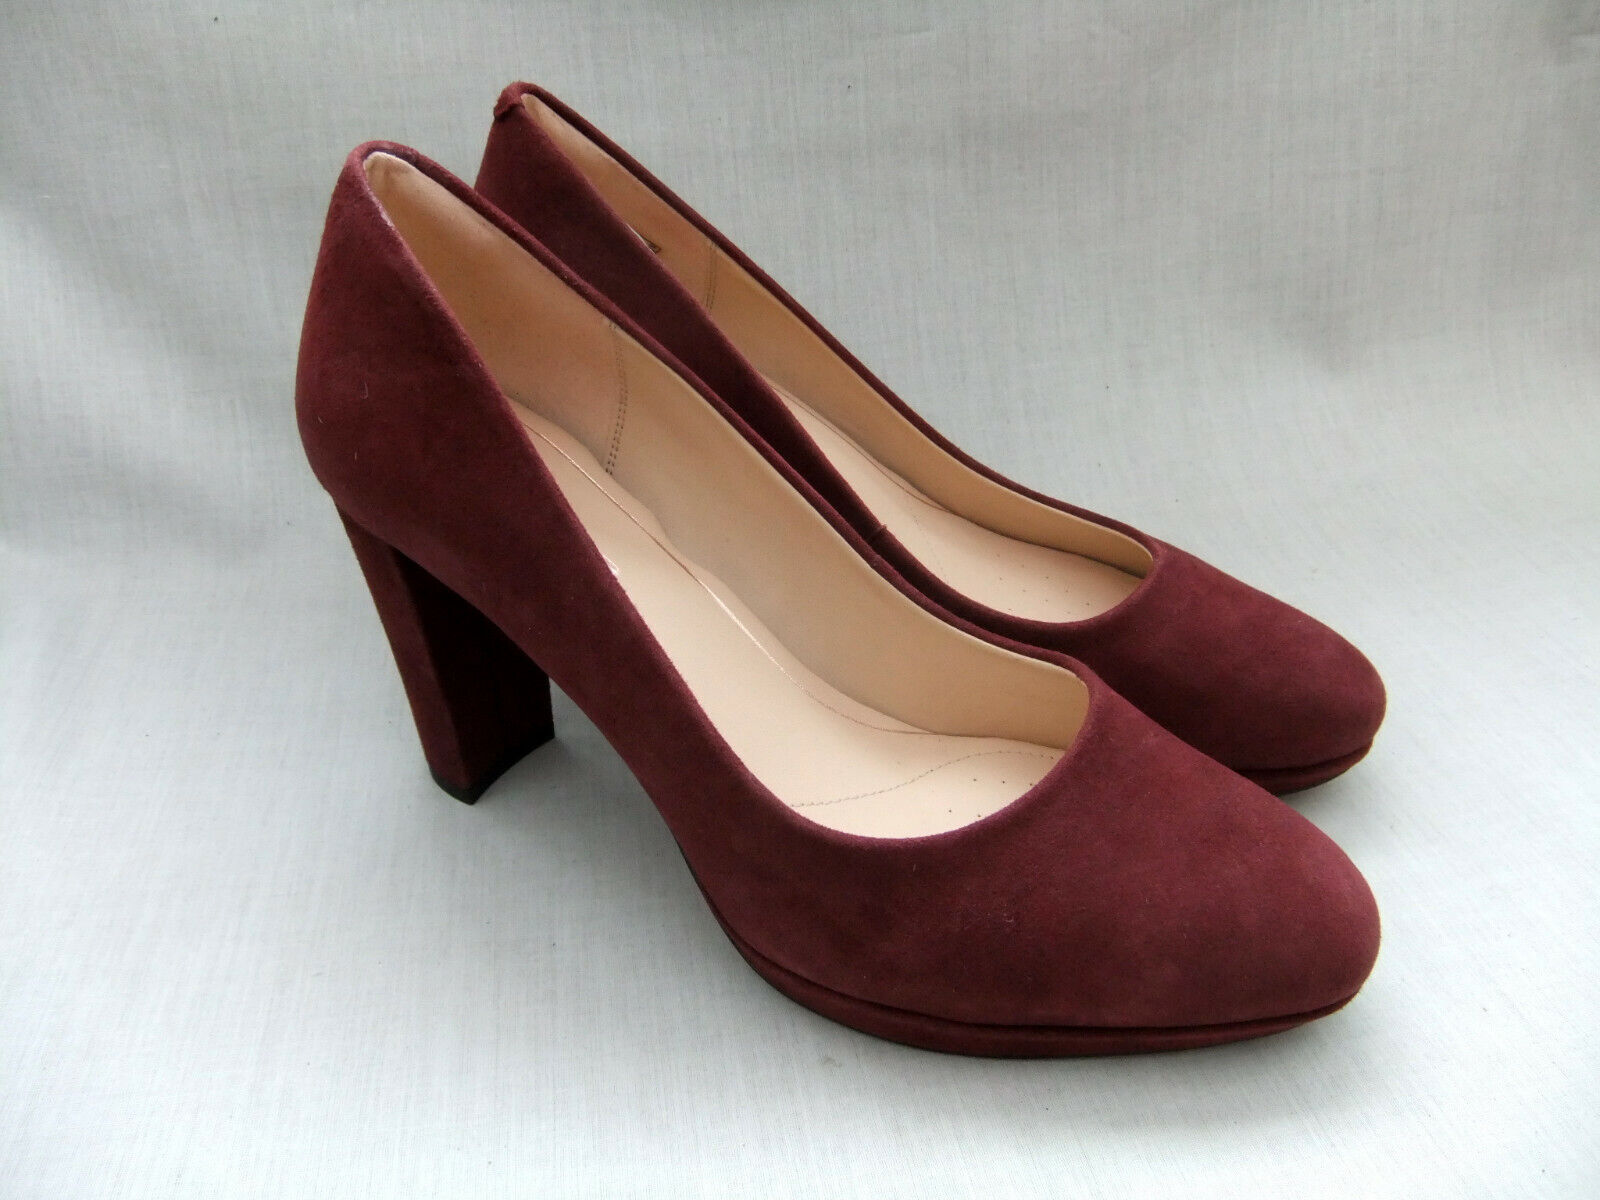 NEW CLARKS KENDRA SIENNA WOMENS BURGUNDY SUEDE PLATFORM SHOES SIZE SIZE SIZE 8   42 3f91a8